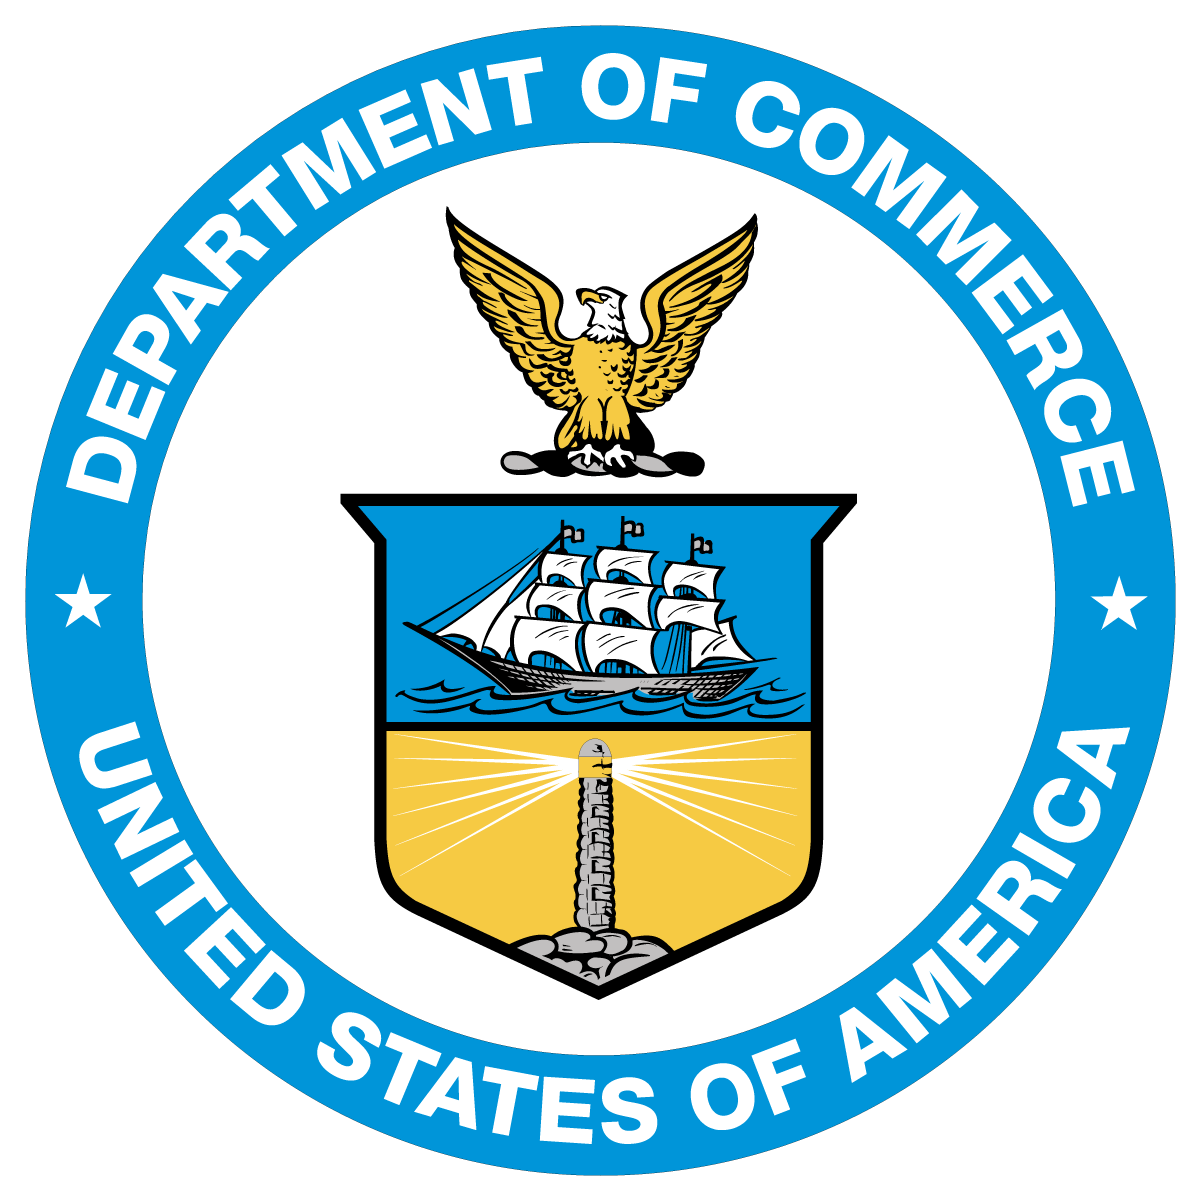 1200x1200 Us Department Of Commerce Seal Logo Seal Vector Free Vector